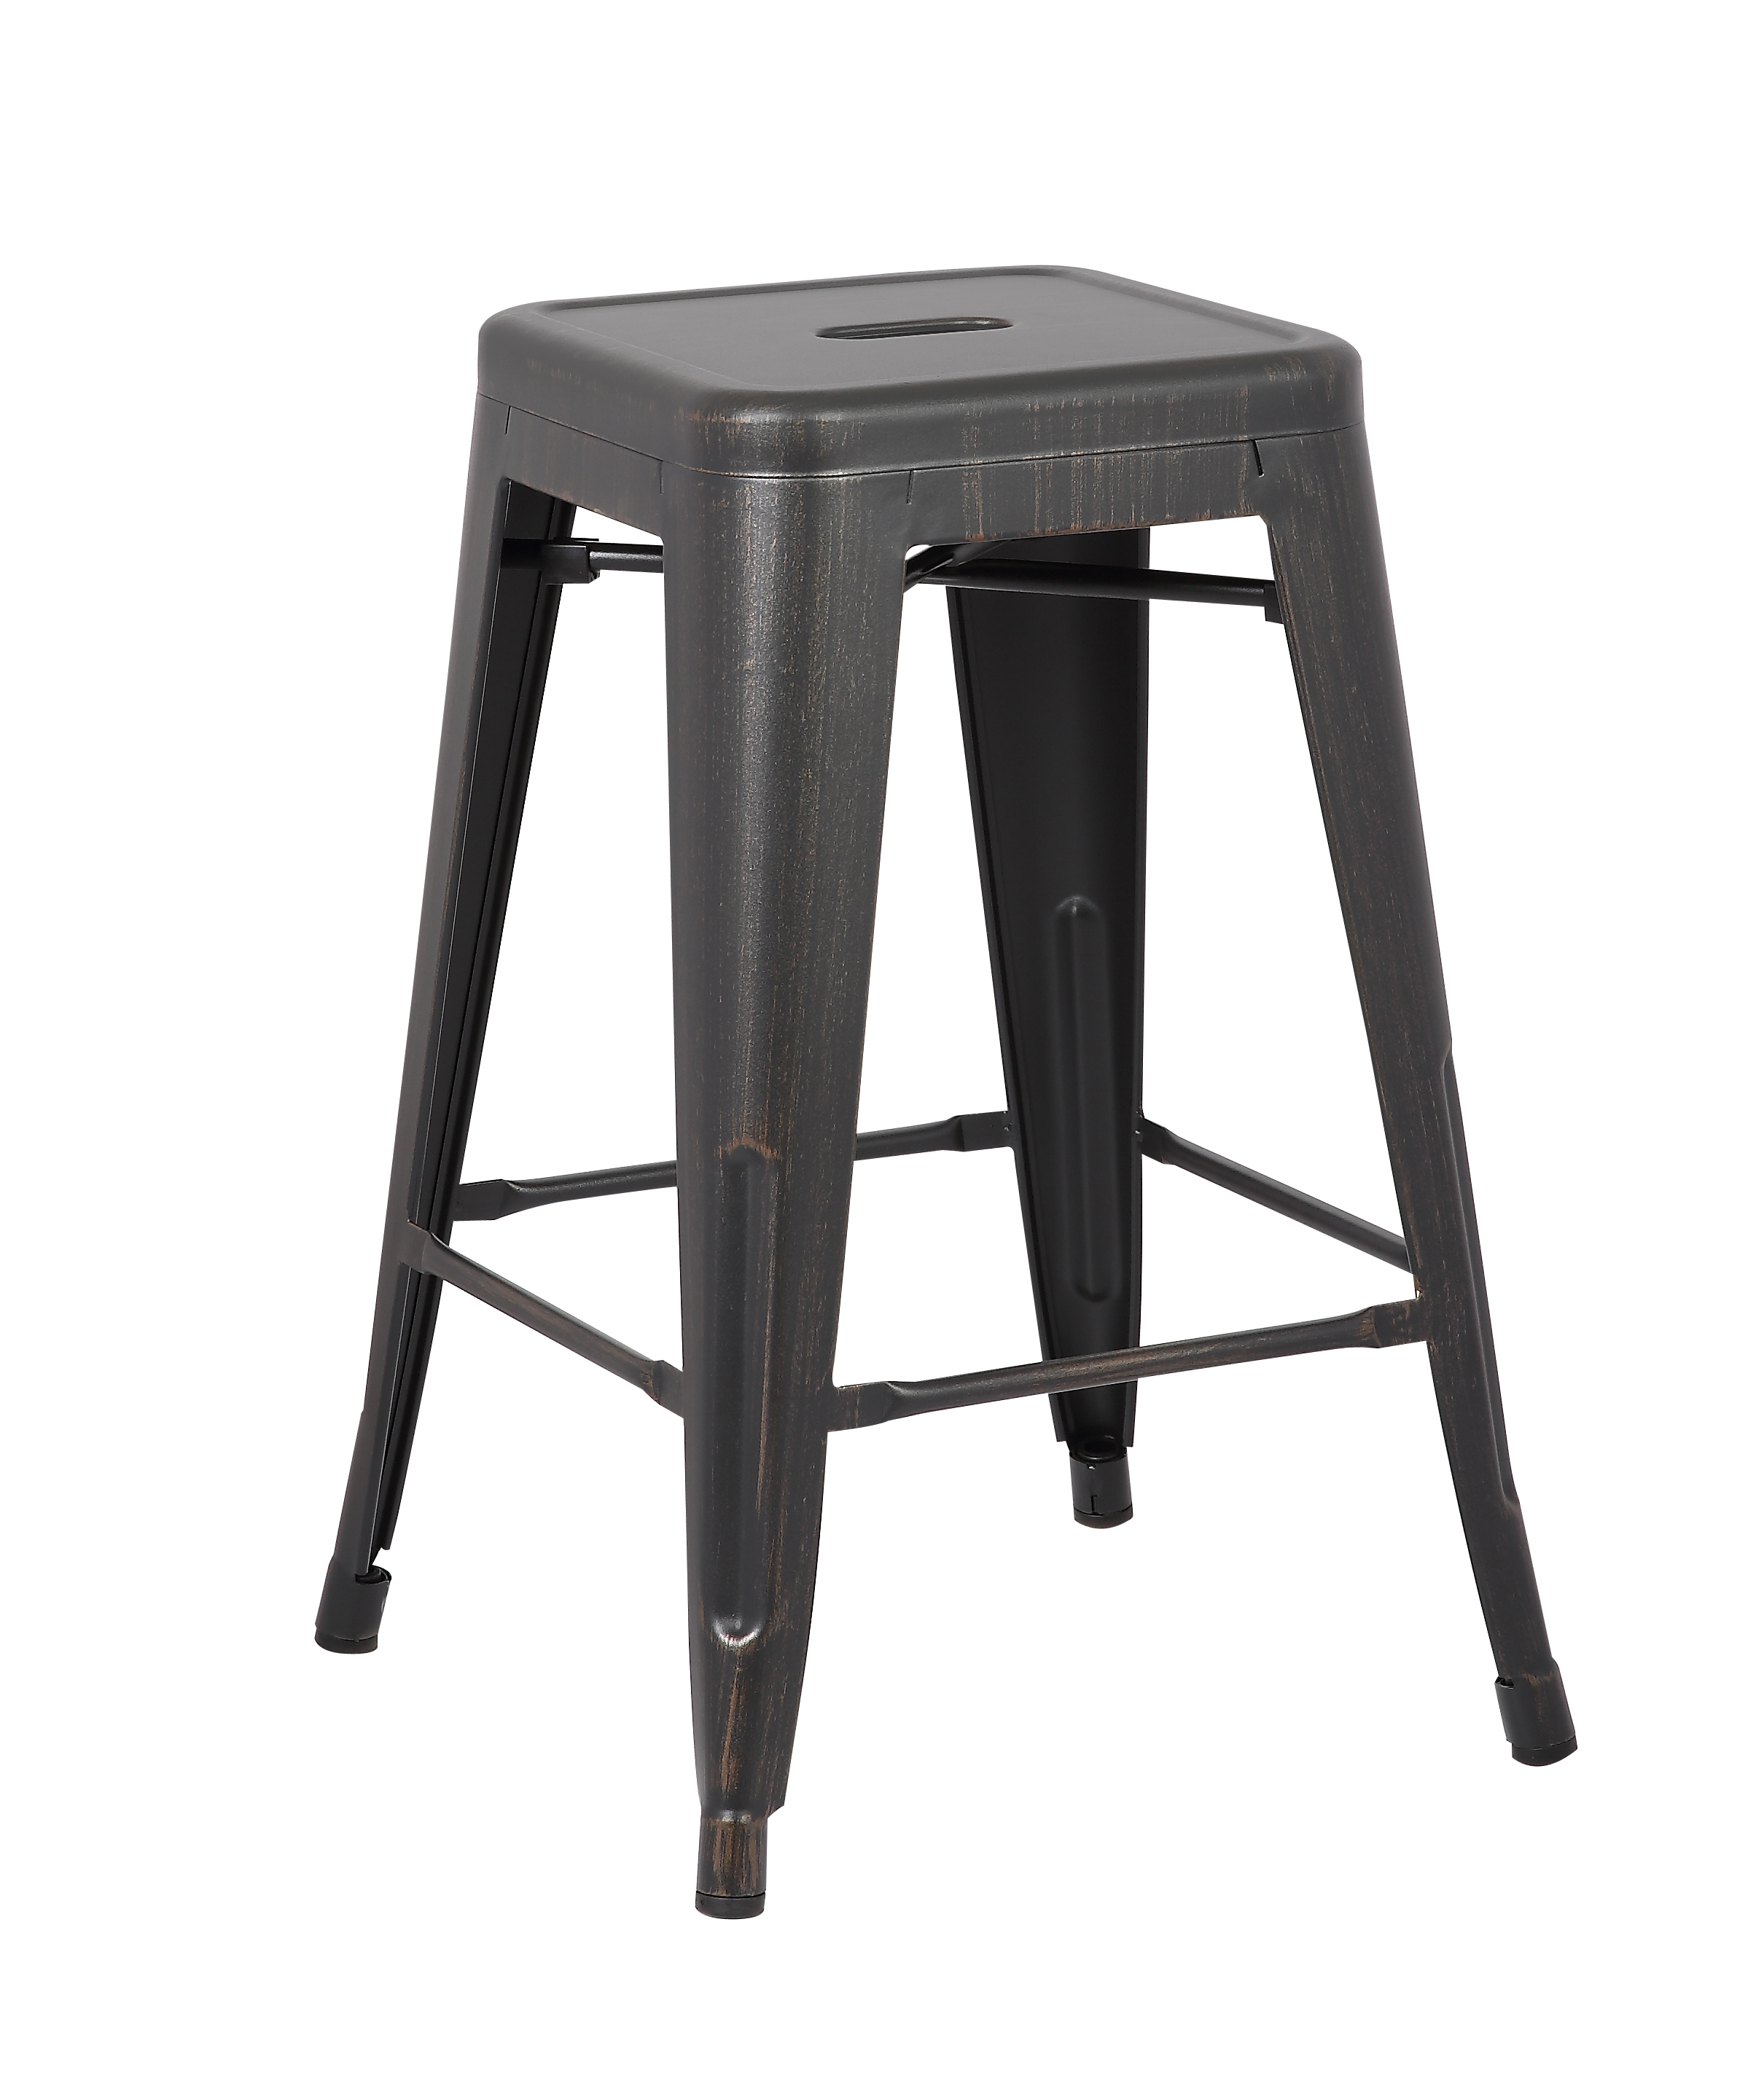 Backless Industrial Metal Bar Stools Distressed Black